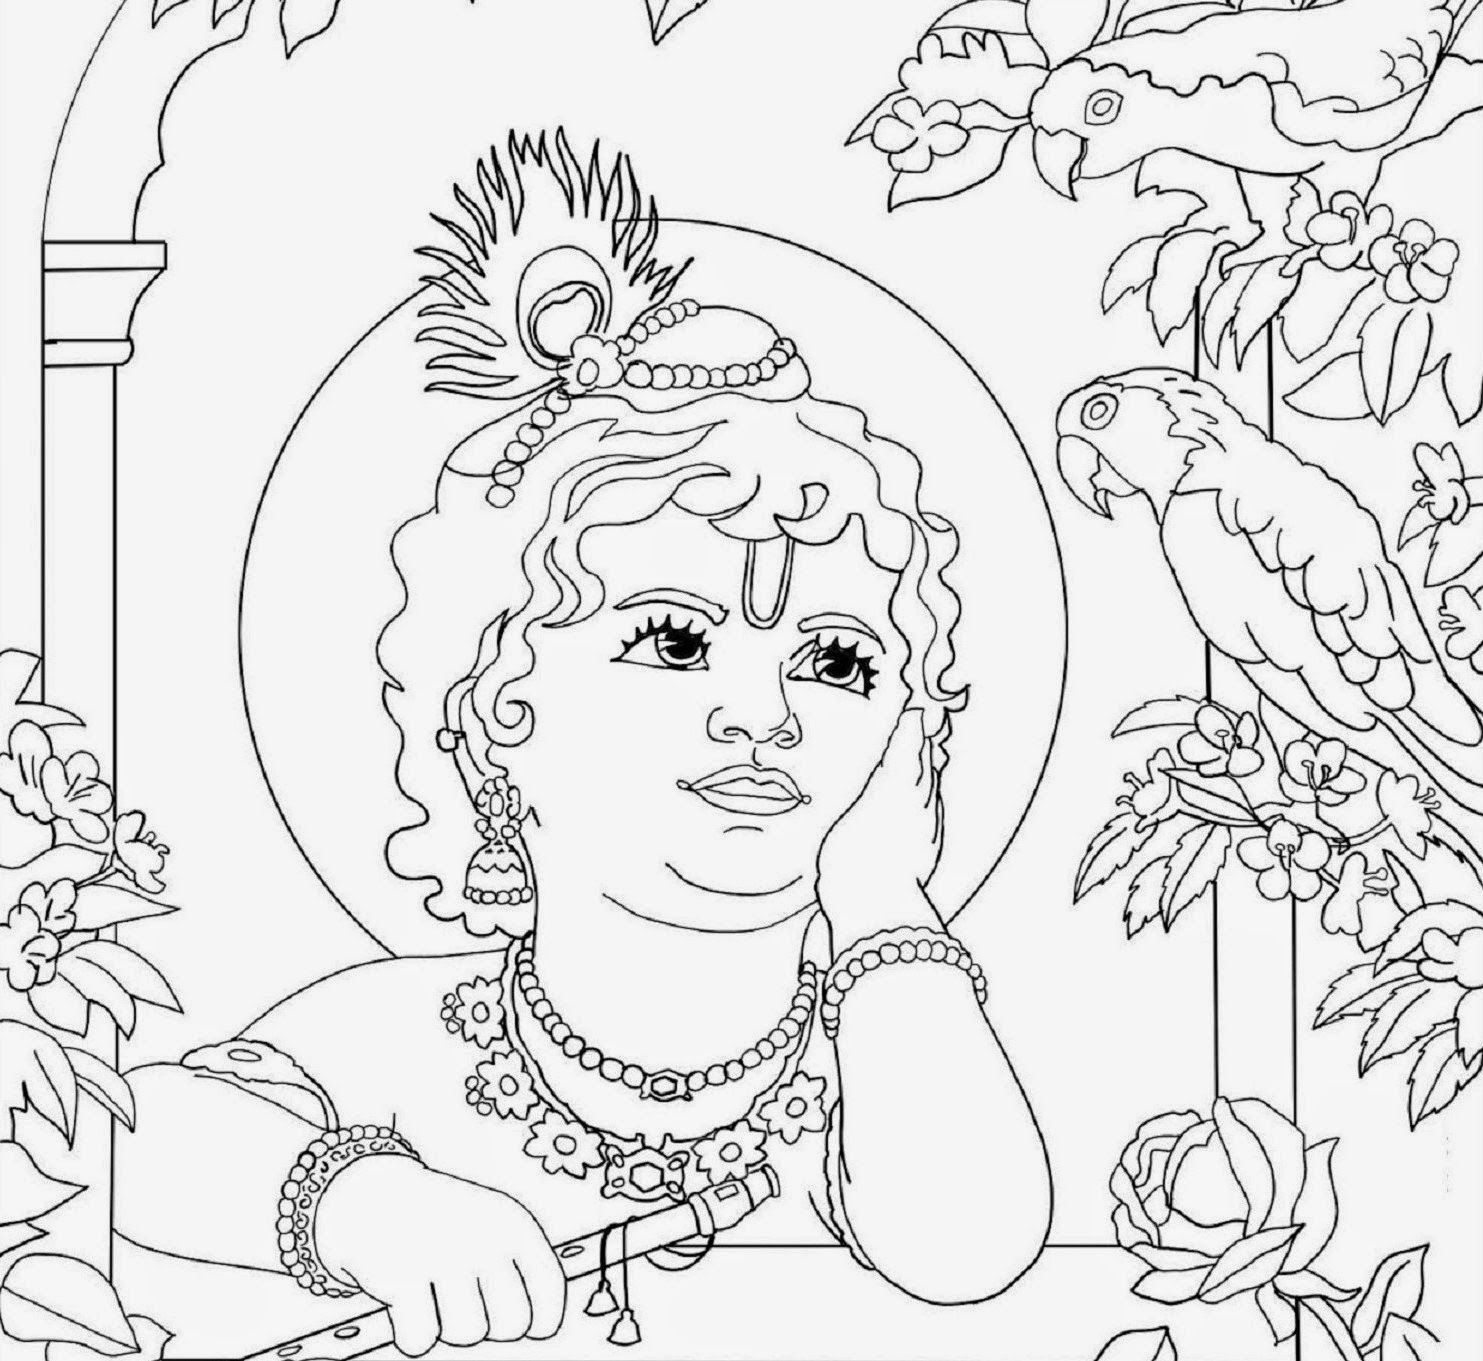 coloring pages of little krishna baby krishna coloring pages at getcoloringscom free little coloring of pages krishna